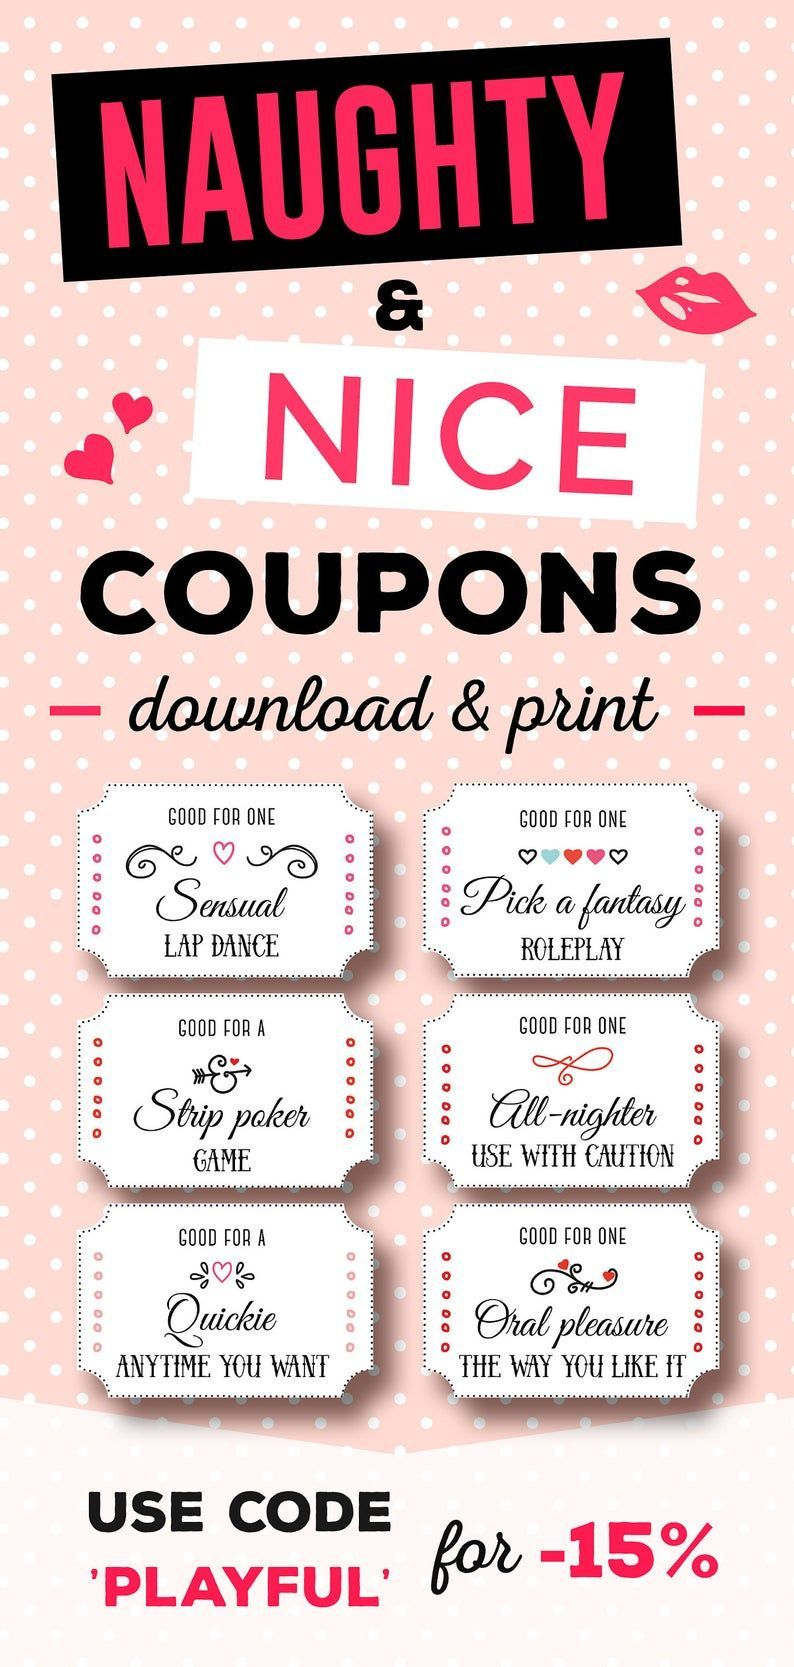 Love Coupons For Girlfriend Love Coupons Naughty Coupon Book Love Coupons For Him Birthday Wishes For Girlfriend